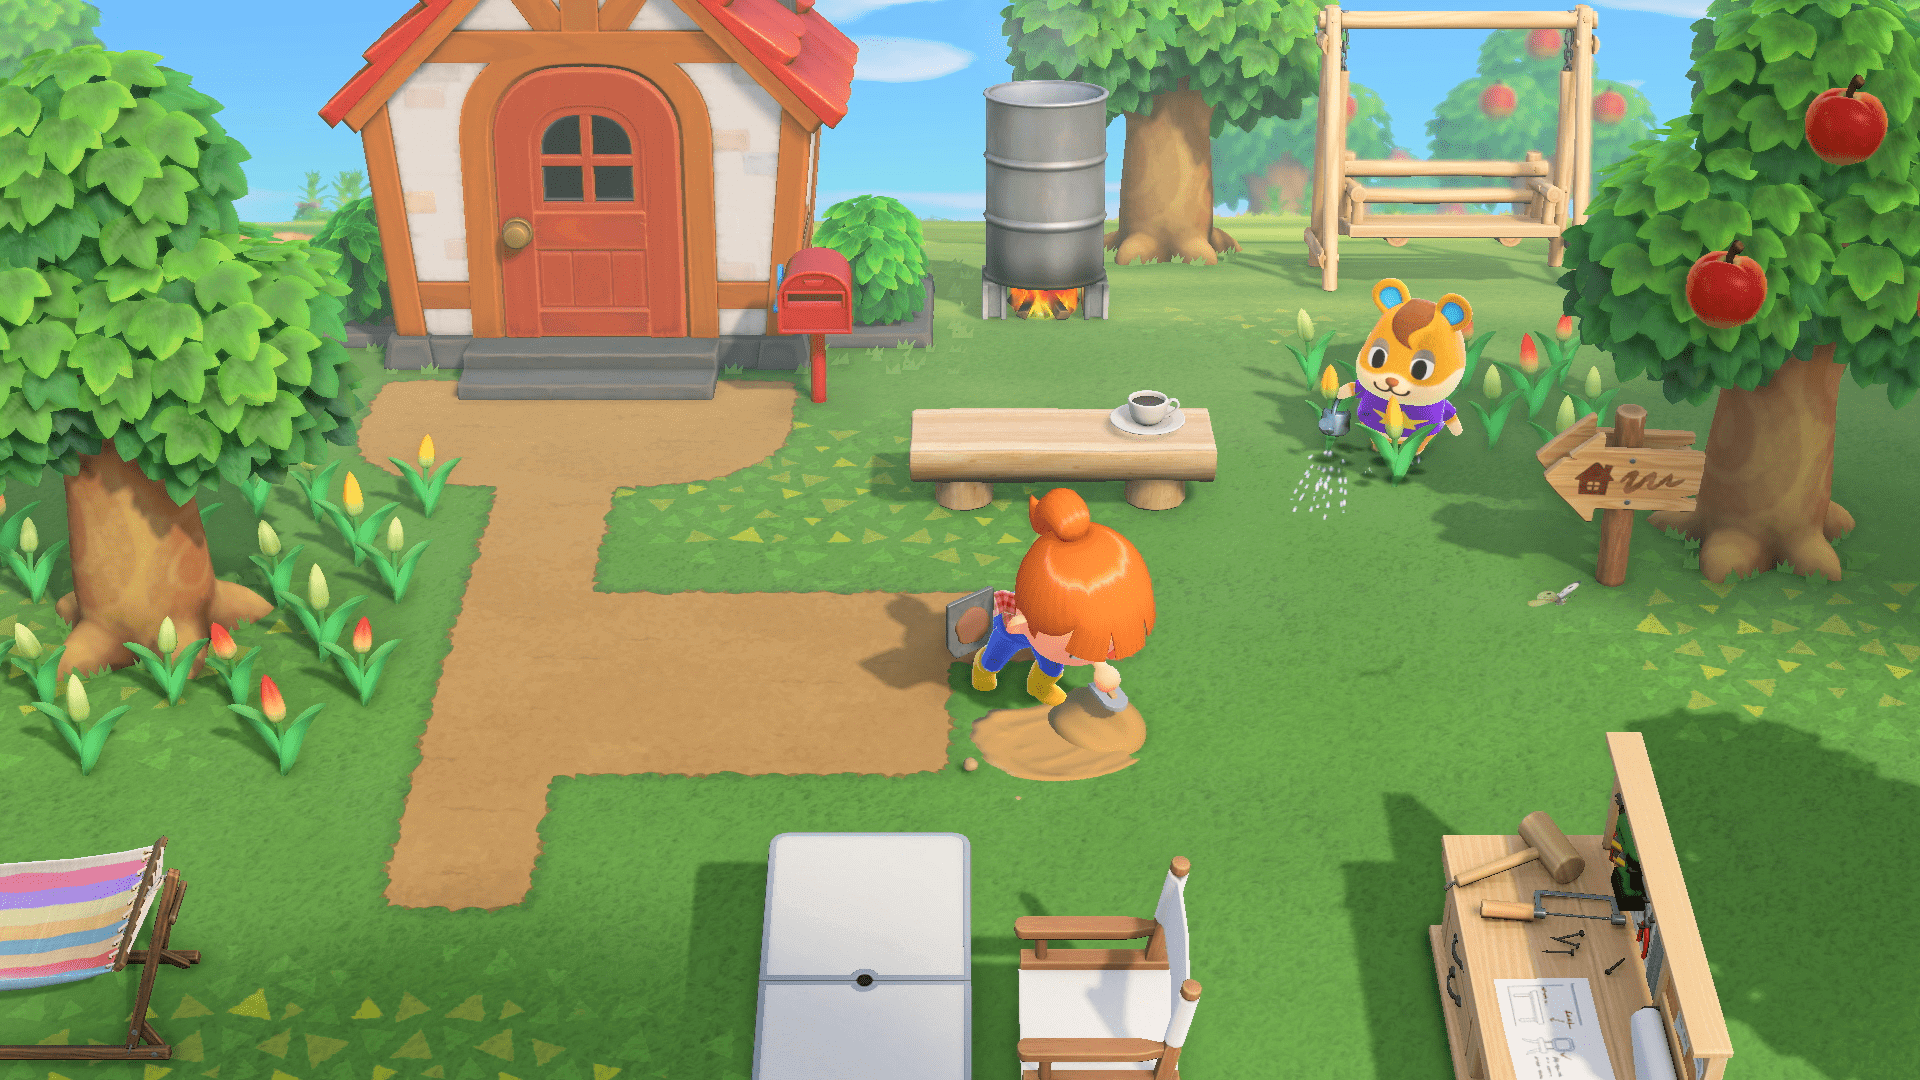 En train de faire un chemin, Animal Crossing : New Horizons